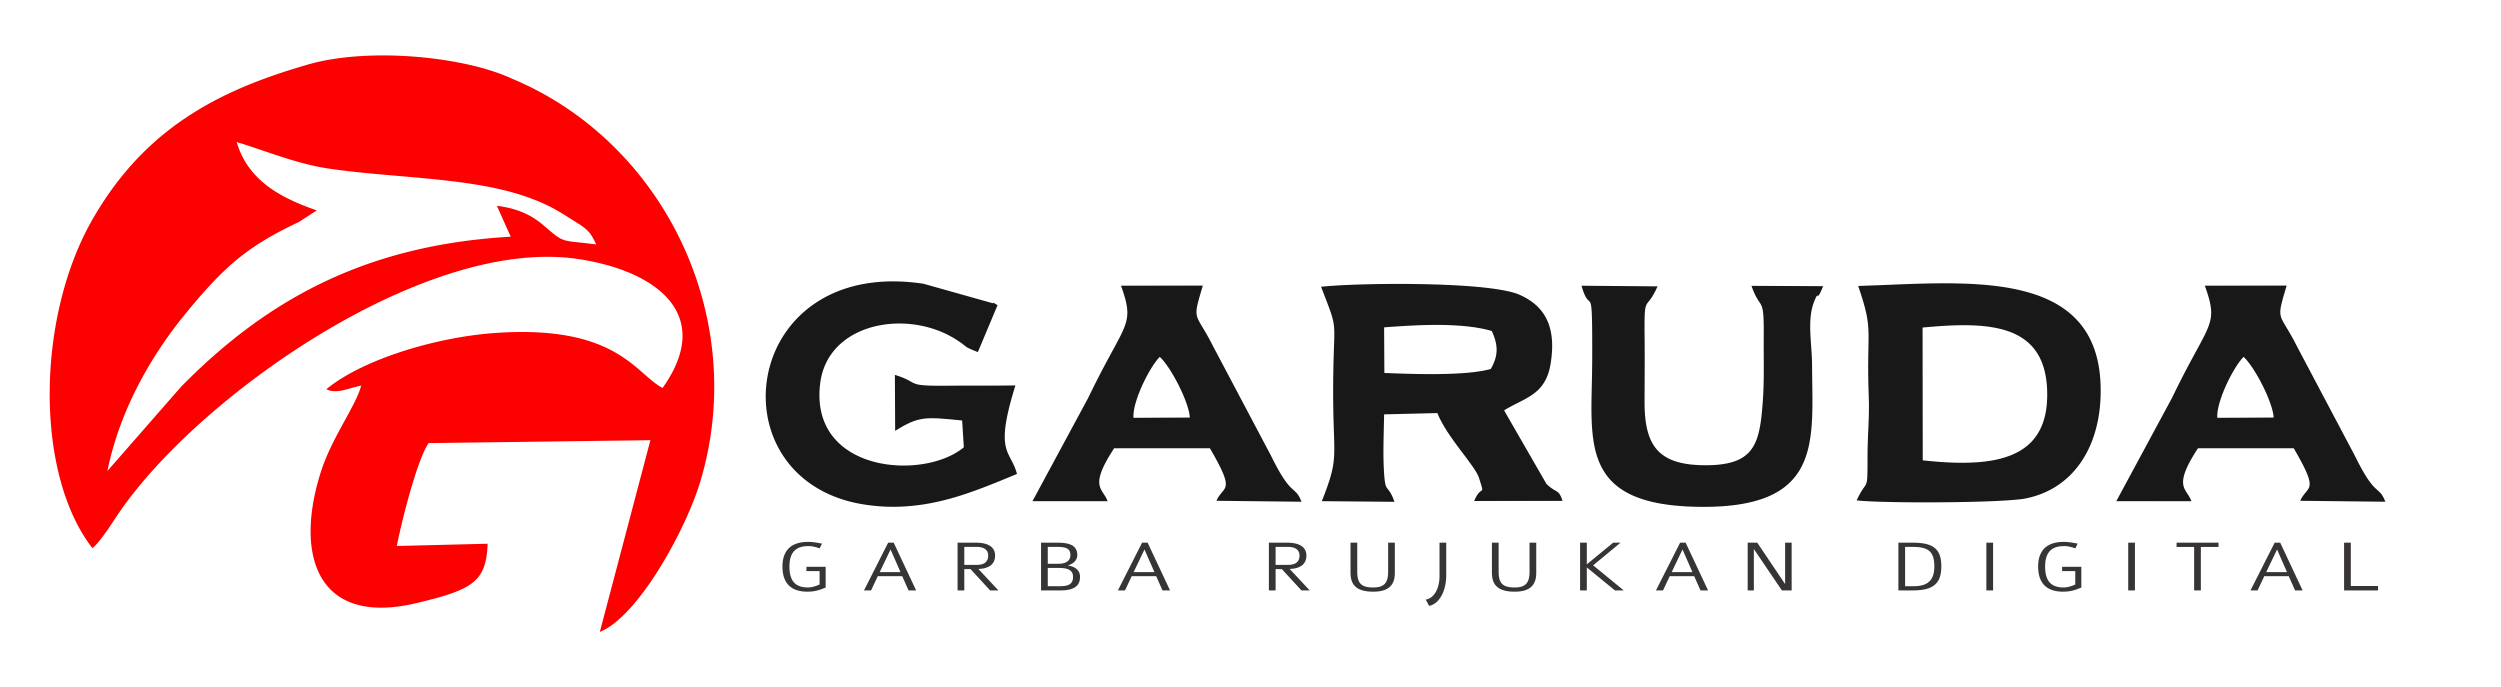 Image result for garuda logo jurnal